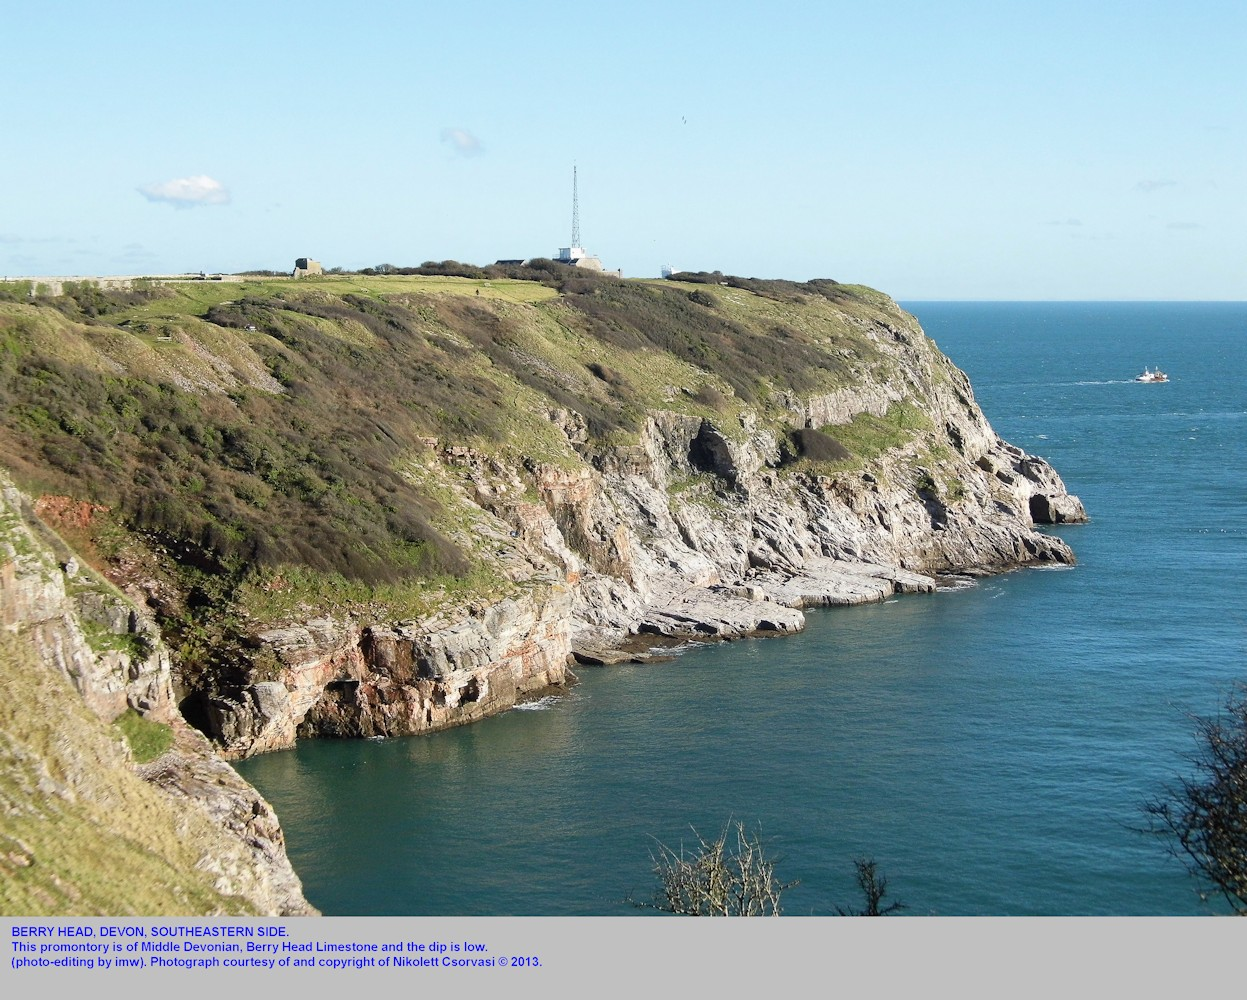 The southeastern side of Berry Head, near Torquay, Devon, photography by Nikolett Csorvasi